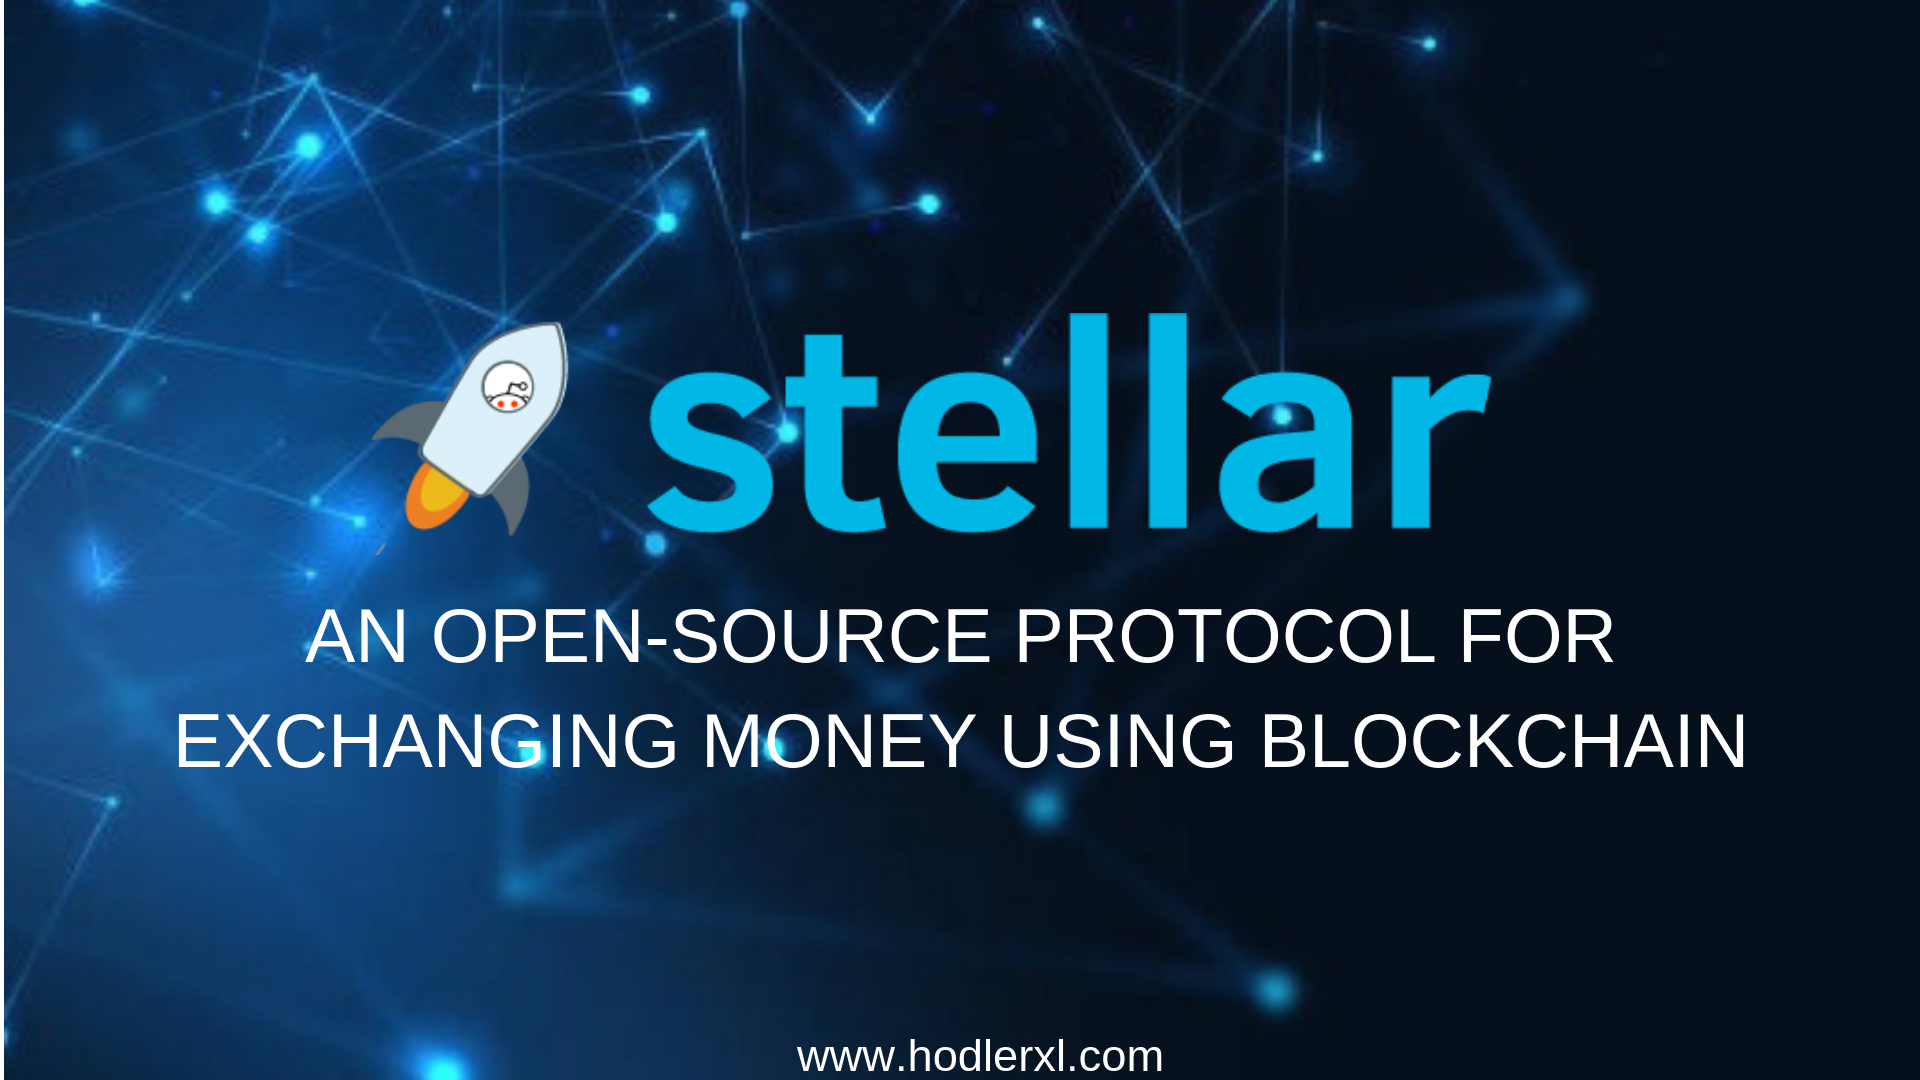 Stellar An Open-Source Protocol for Exchanging Money Using Blockchain